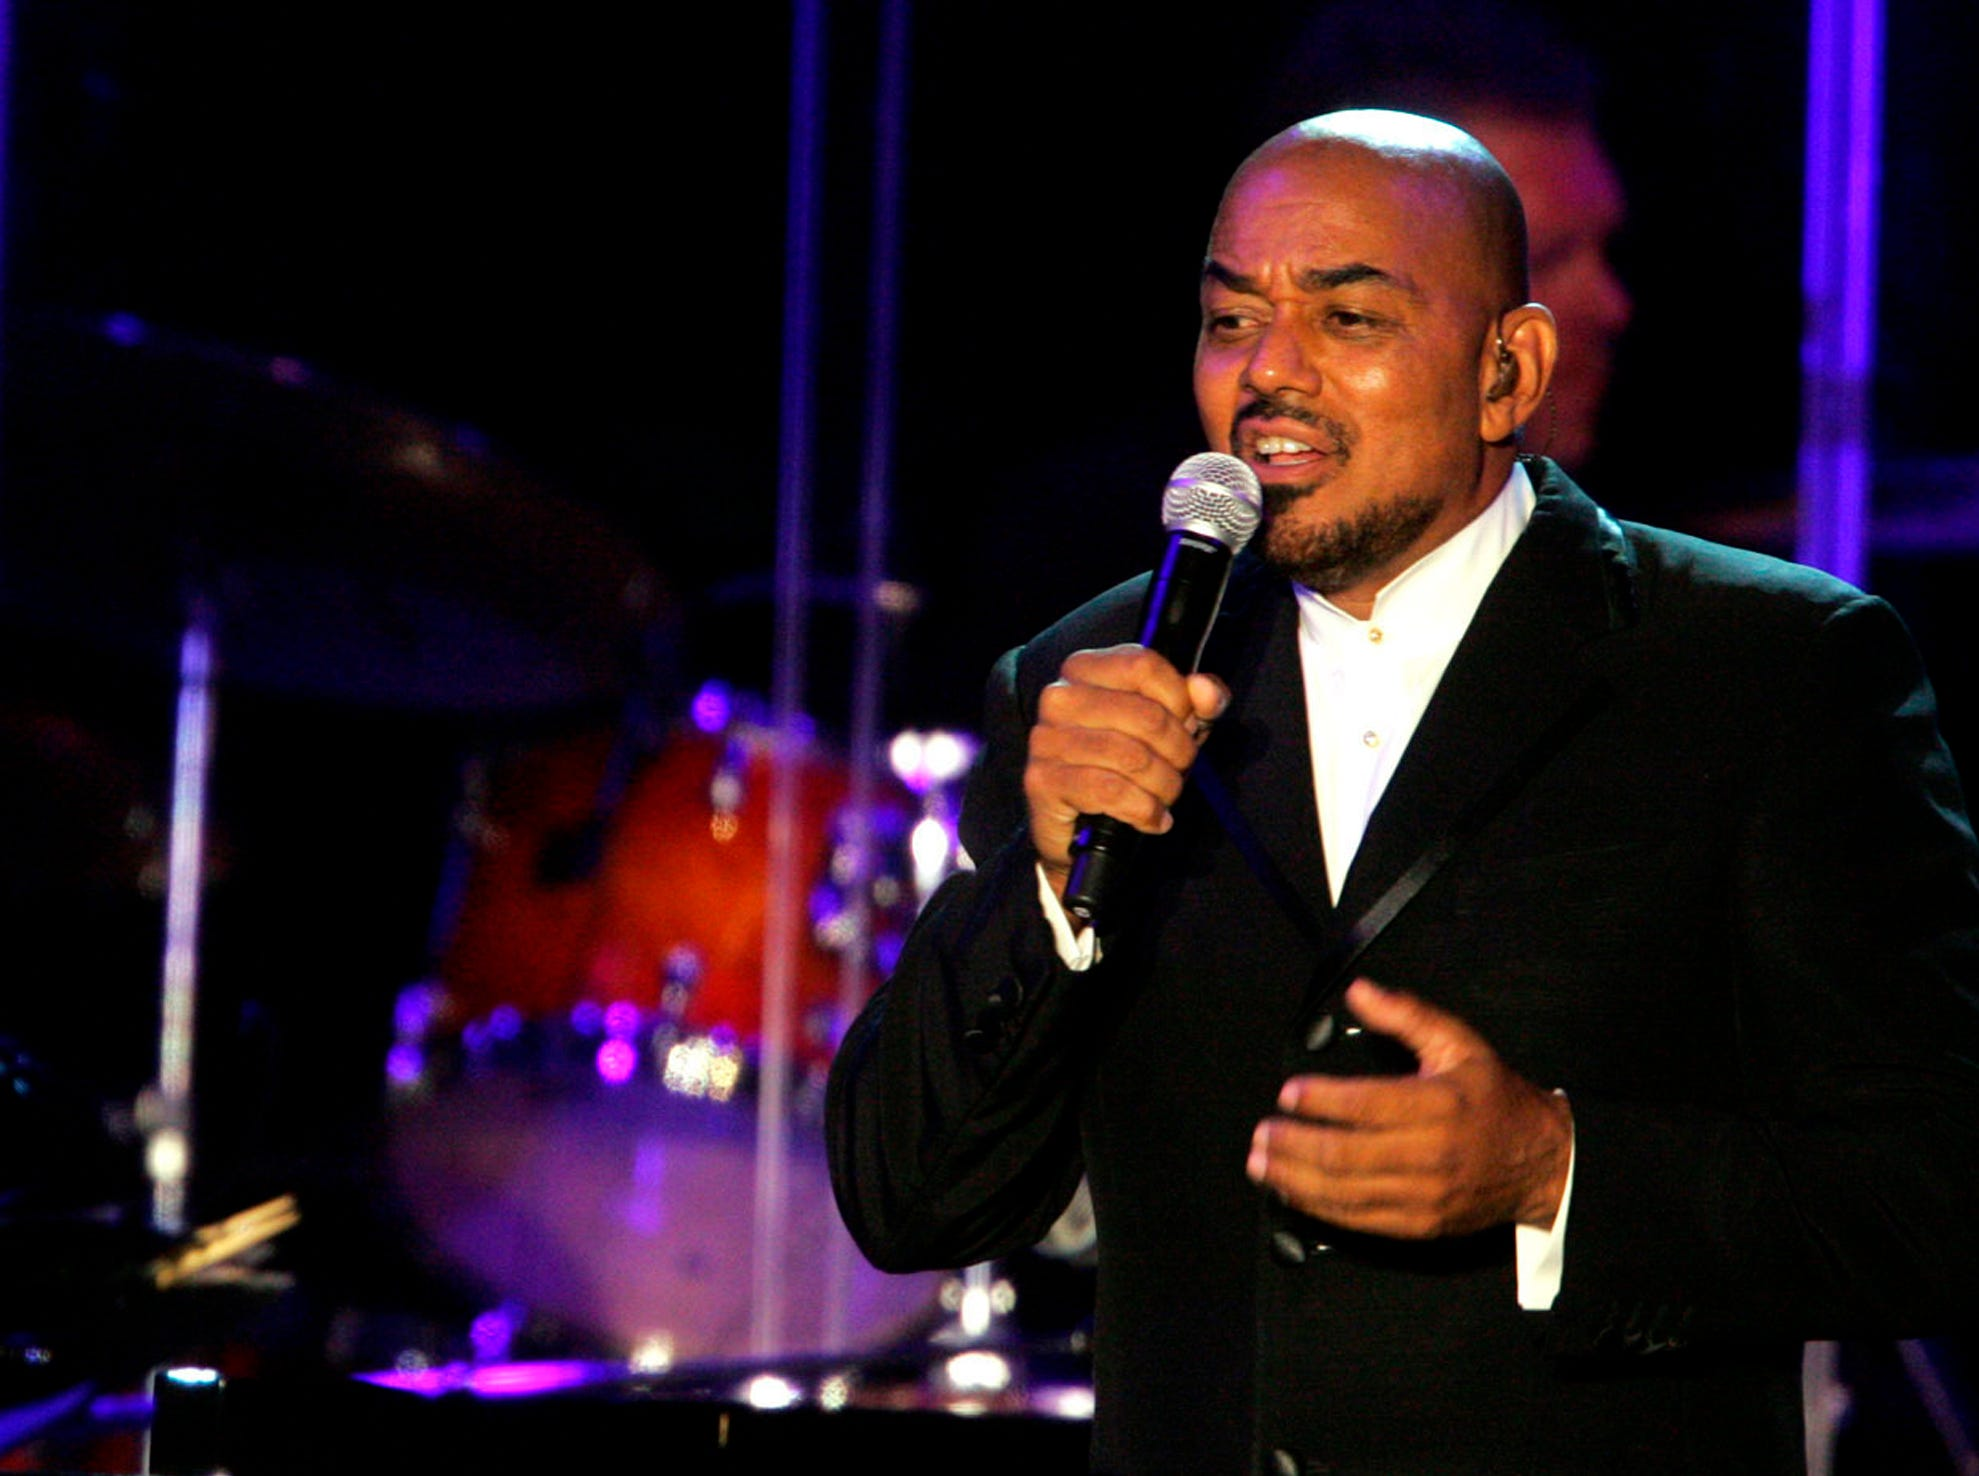 "In this July 28, 2007, file photo, James Ingram performs during the Grammy Foundation's ""Starry Night Benefit Honoring Quincy Jones"" held at UCLA Tennis Center in Los Angeles. Ingram, the Grammy-winning singer who launched multiple hits on the R&B and pop charts and earned two Oscar nominations for his songwriting, has died. He was 66. Debbie Allen, and actress and Ingram's frequent collaborator, announced his death on Twitter on Tuesday, Jan. 29, 2019."